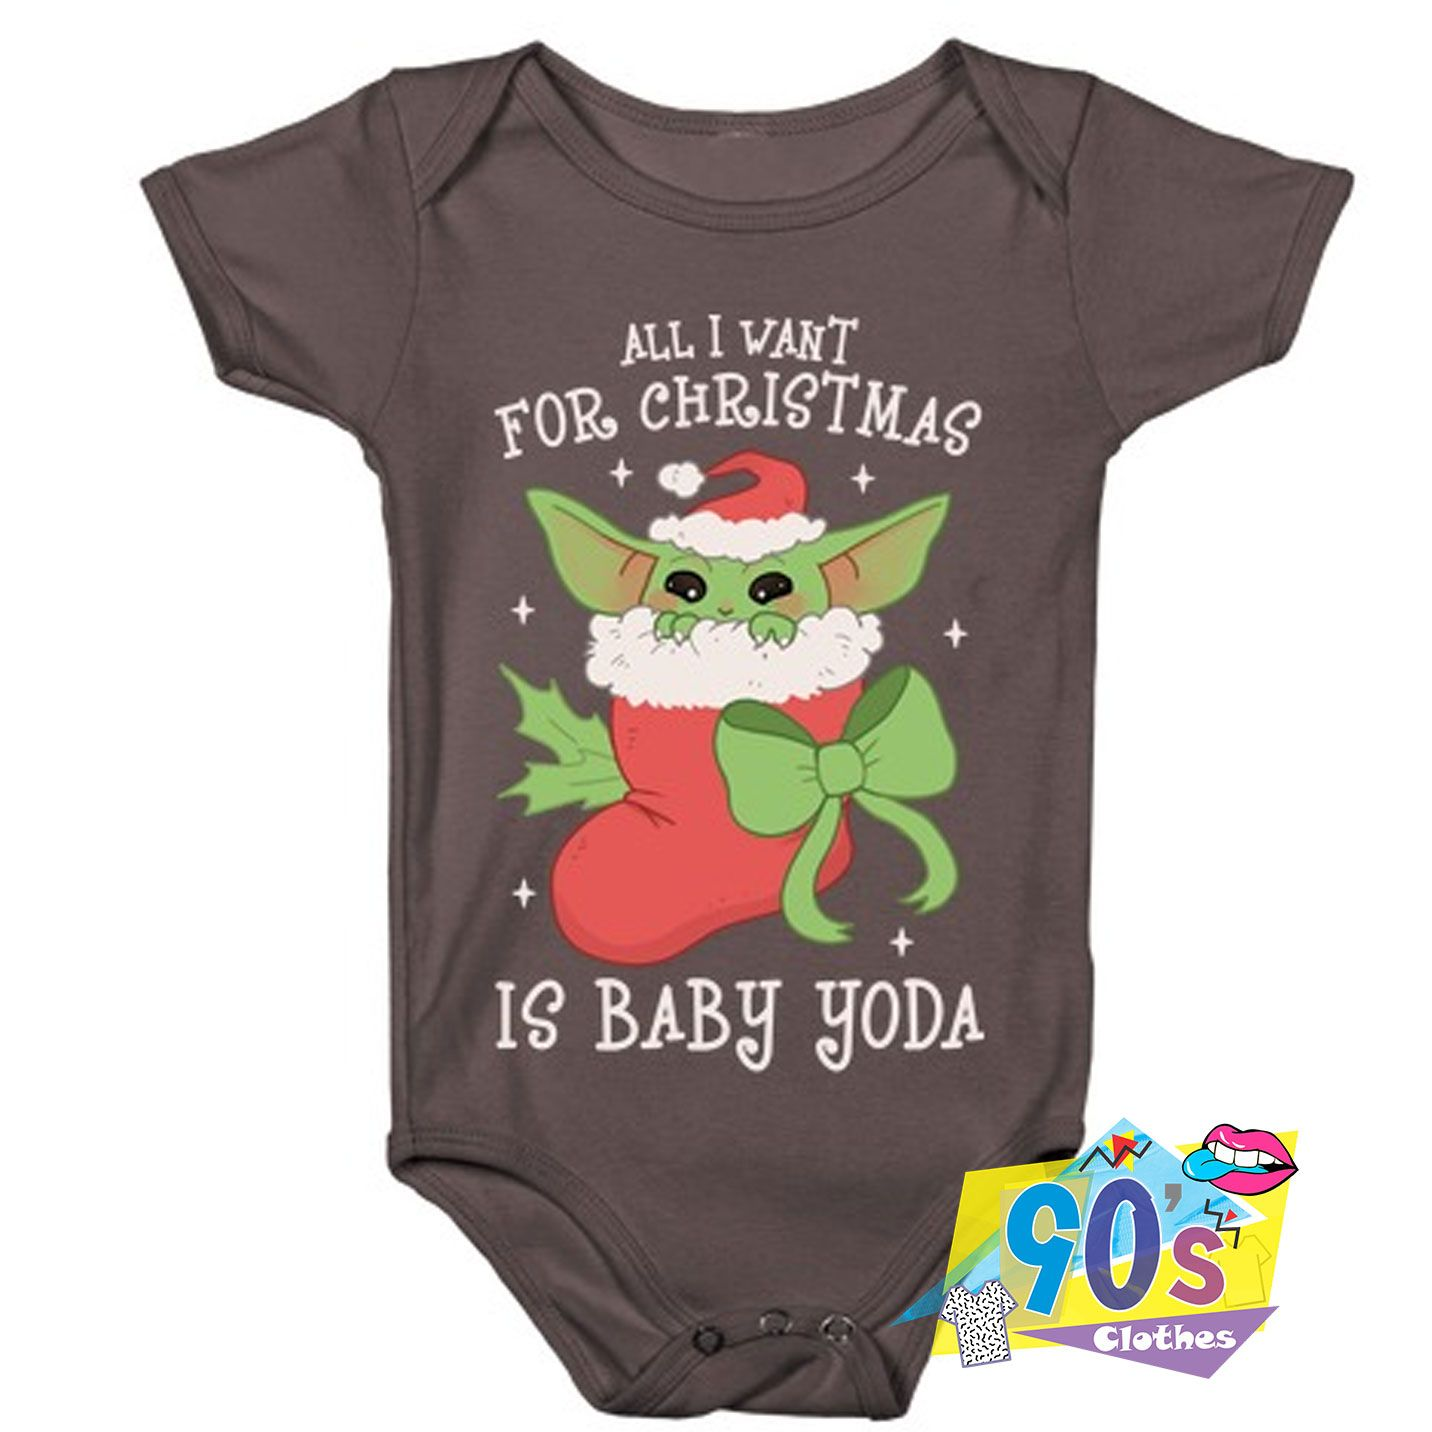 All I Want For Christmas Is Baby Yoda Baby Onesie In 2020 Baby Onesies Cotton Baby Clothes Unisex Kids Clothes